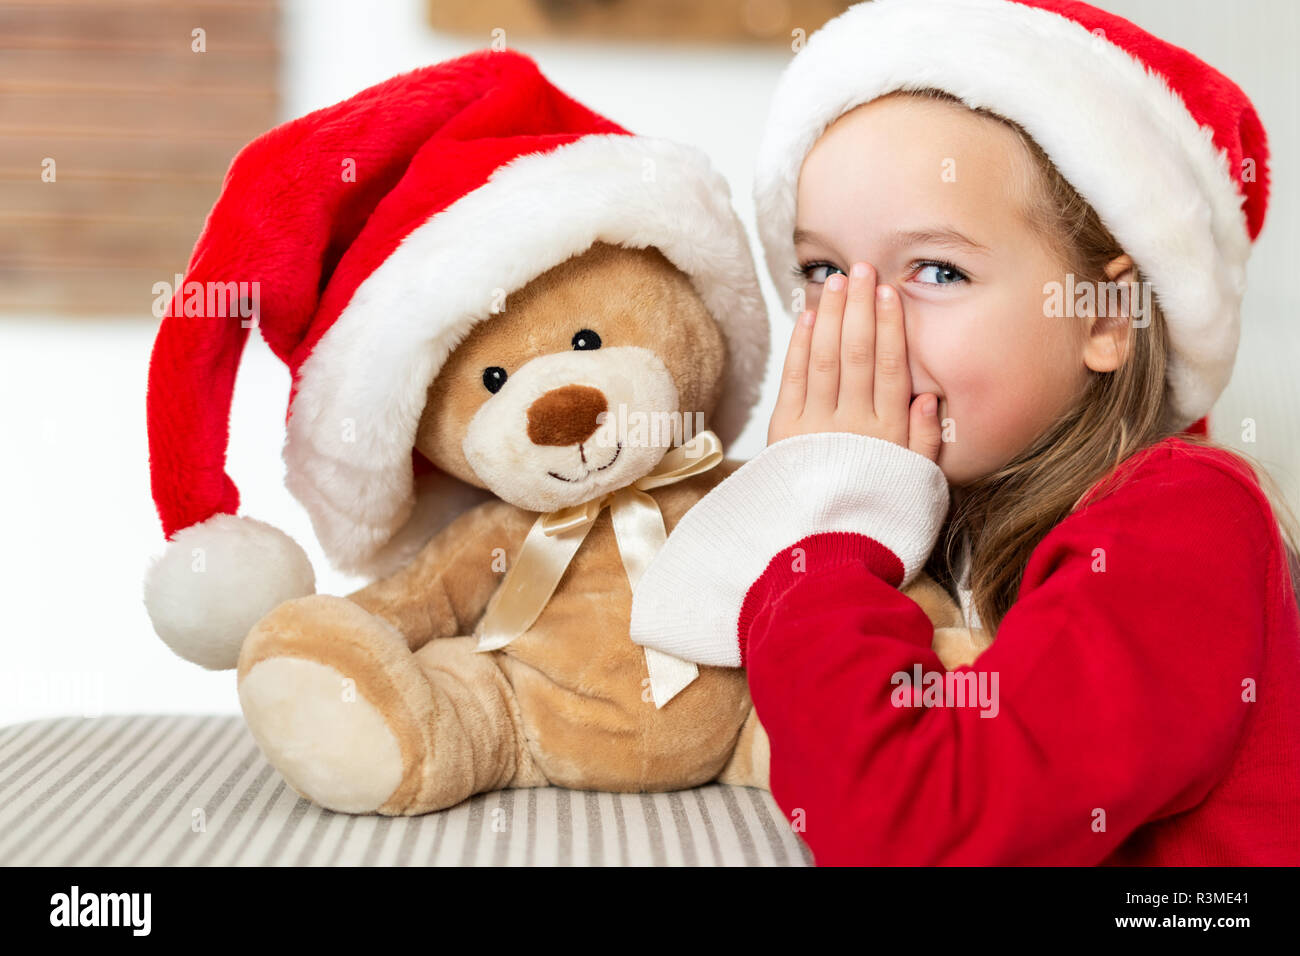 da3cc2fd0507a Cute young girl wearing santa hat whispering a secret to her teddy bear  christmas present toy